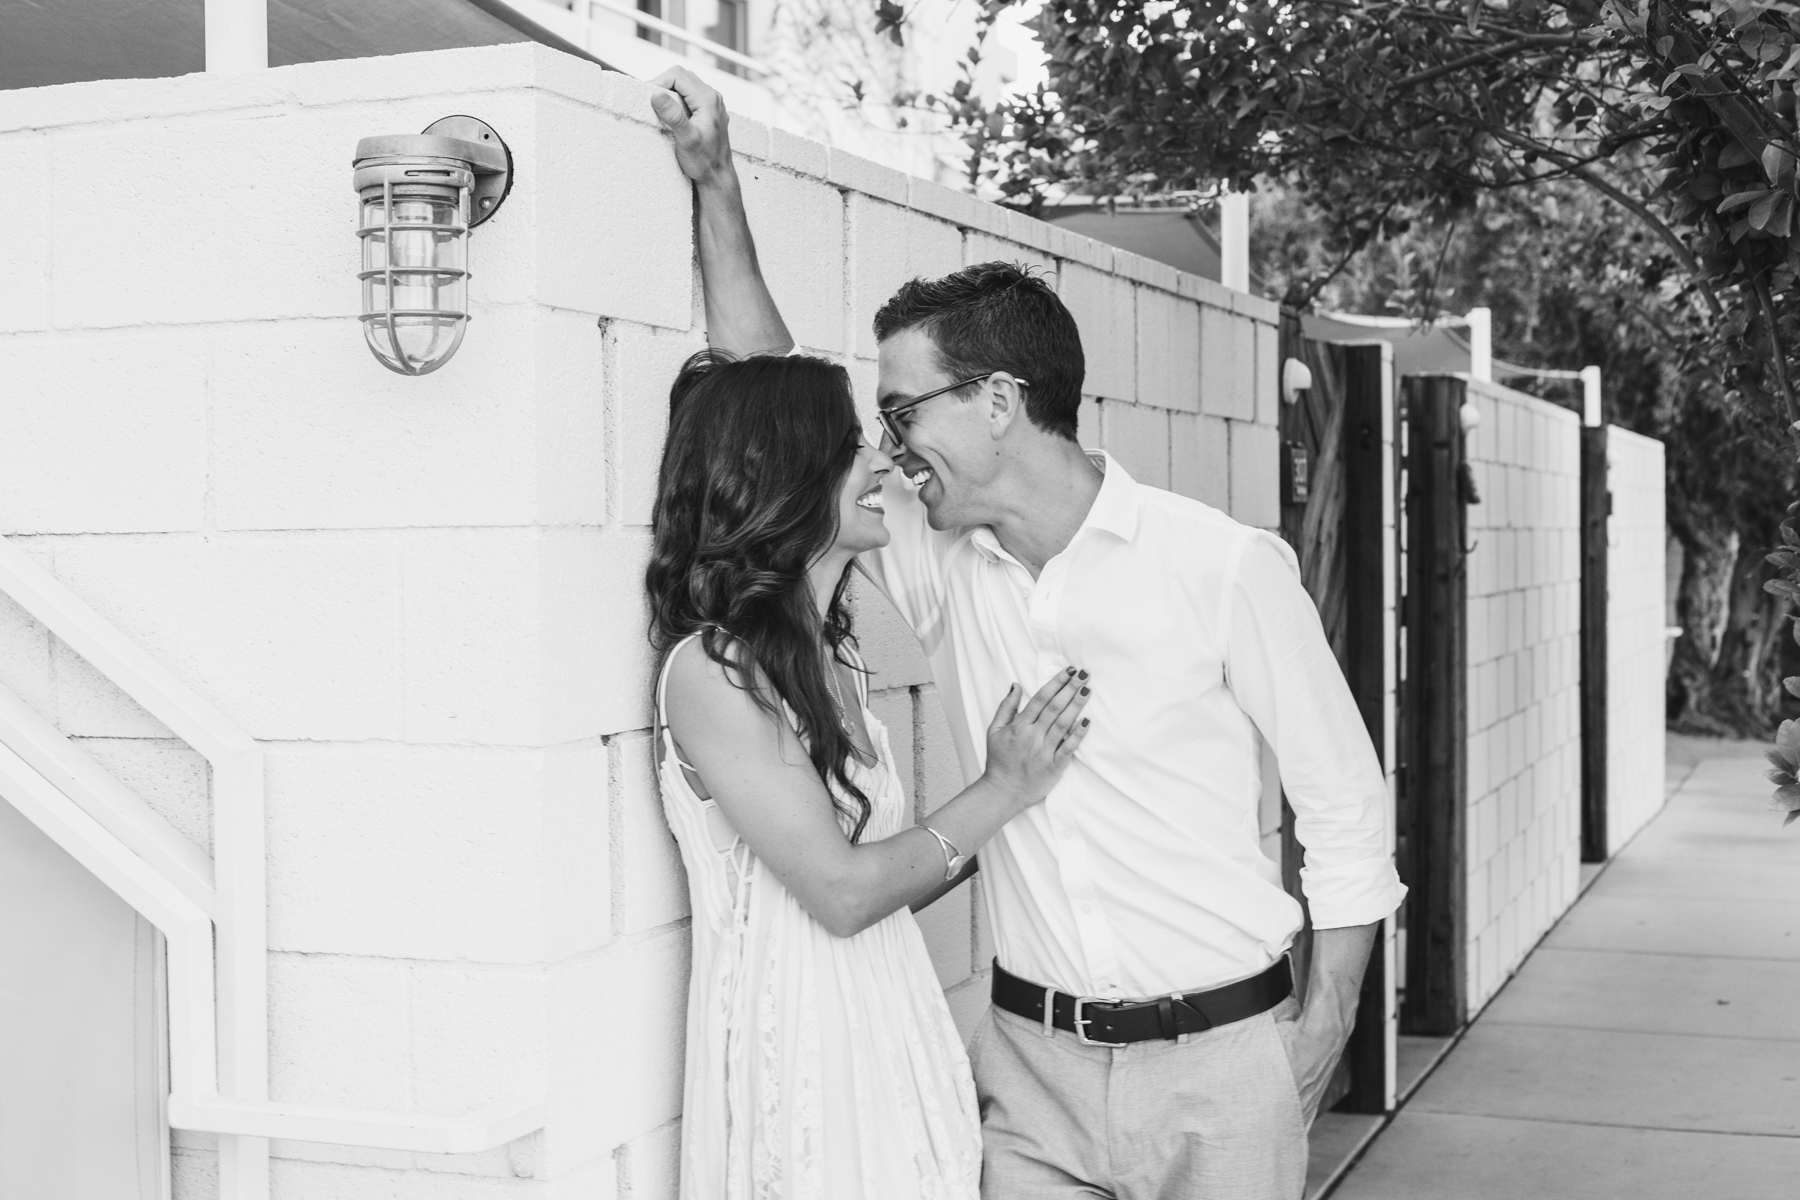 All_Days_Wonder_Palm_Springs_Engagement-39.jpg